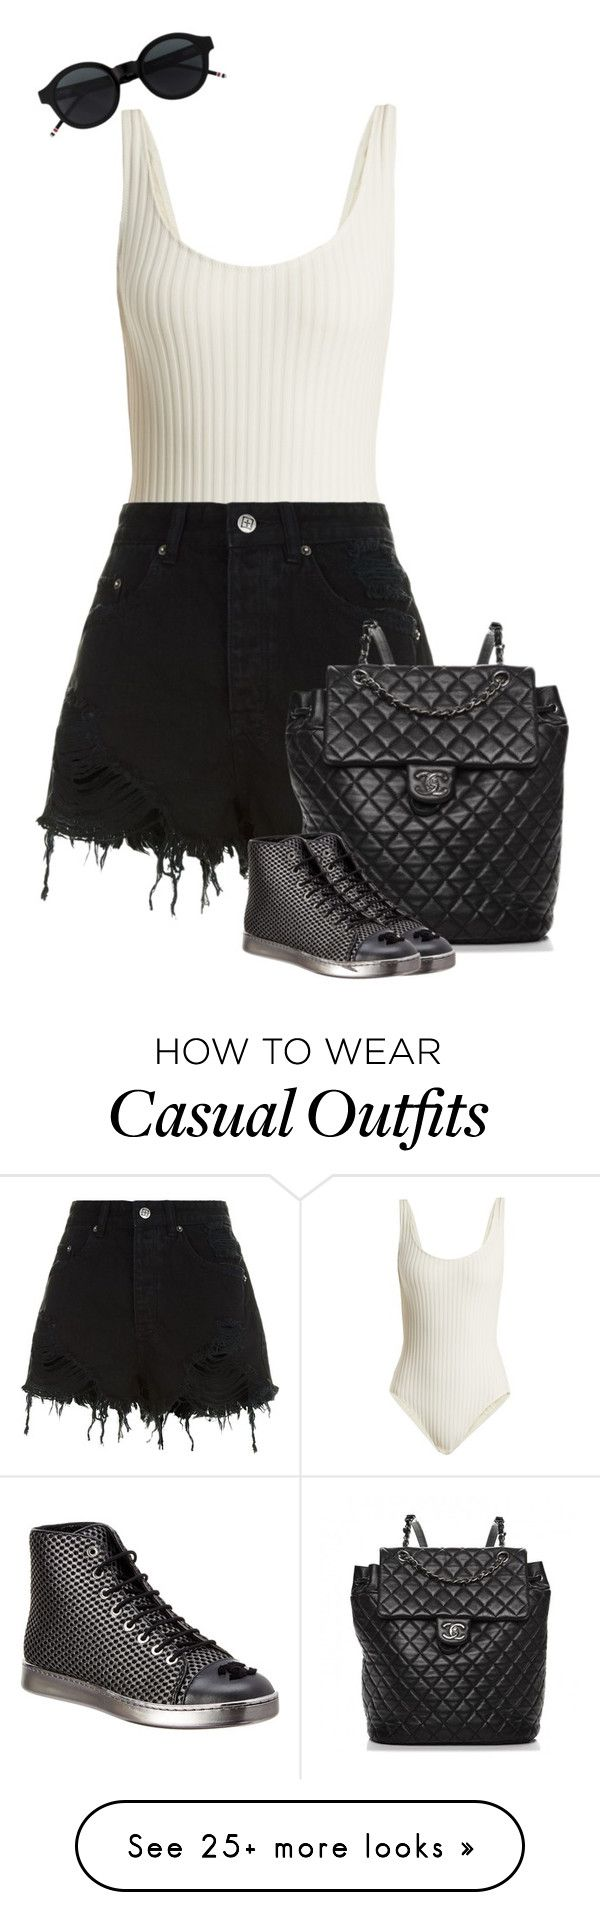 """""""Casual day out"""" by dailyfish on Polyvore featuring Solid & Striped, Ksubi and Chanel"""